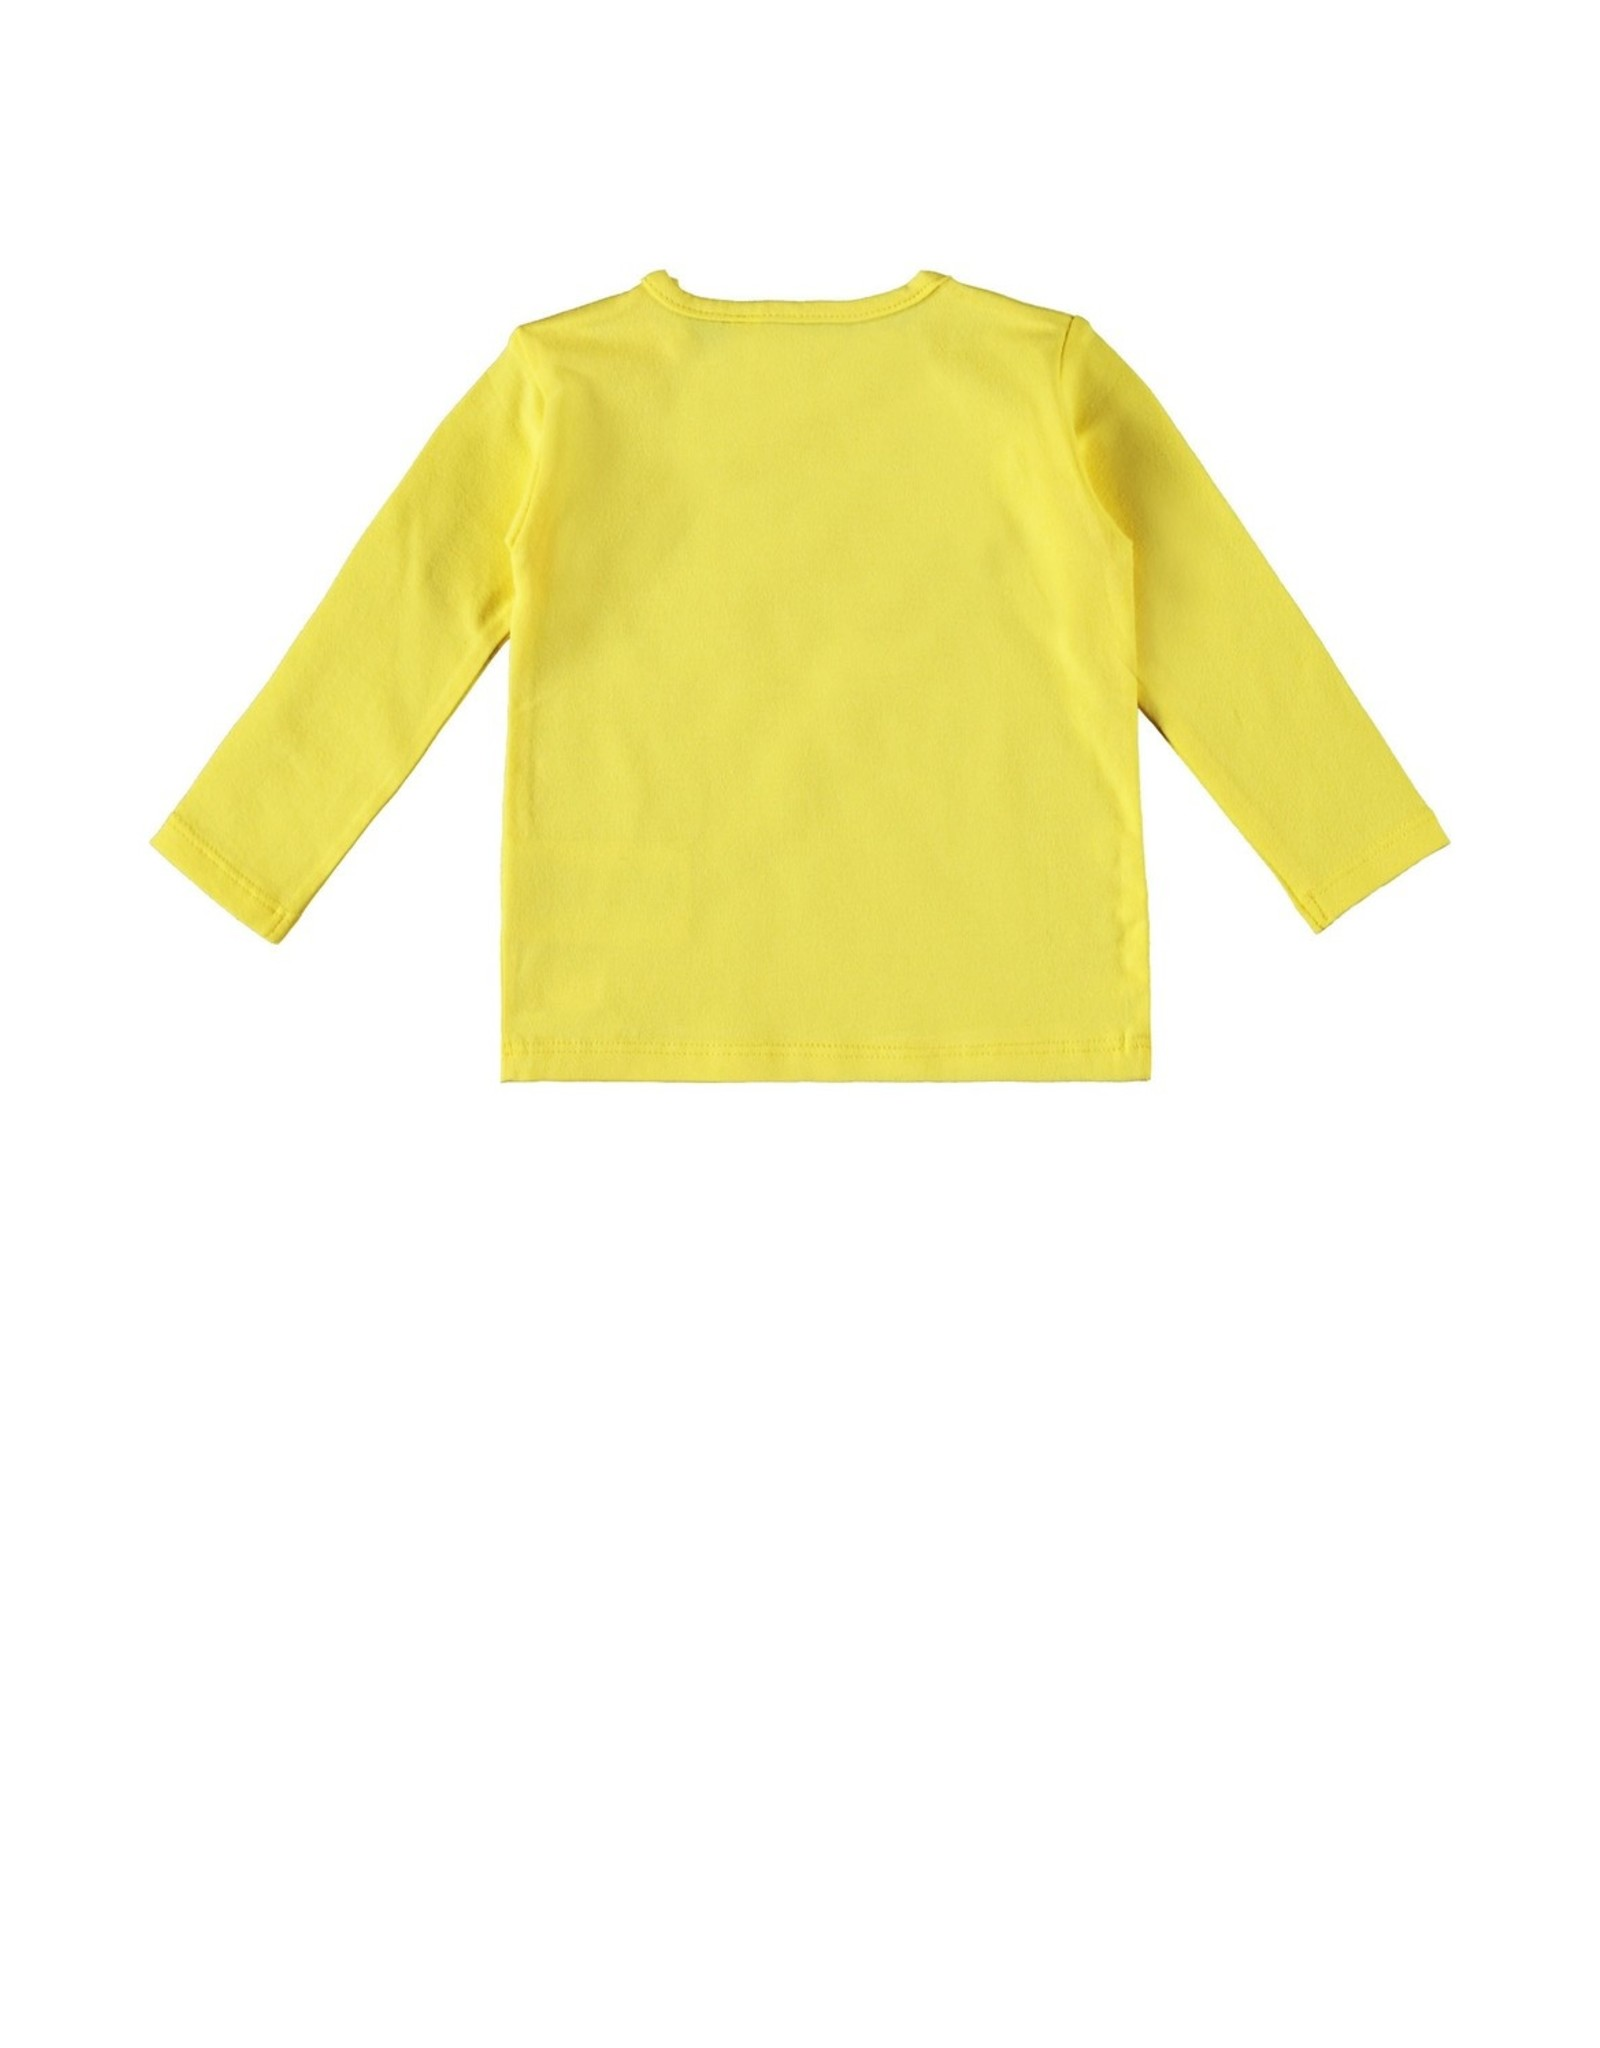 Bampidano New Born T-shirt l/s plain MY EYES START TO SHINE / GIVE ME A SMILE, yellow